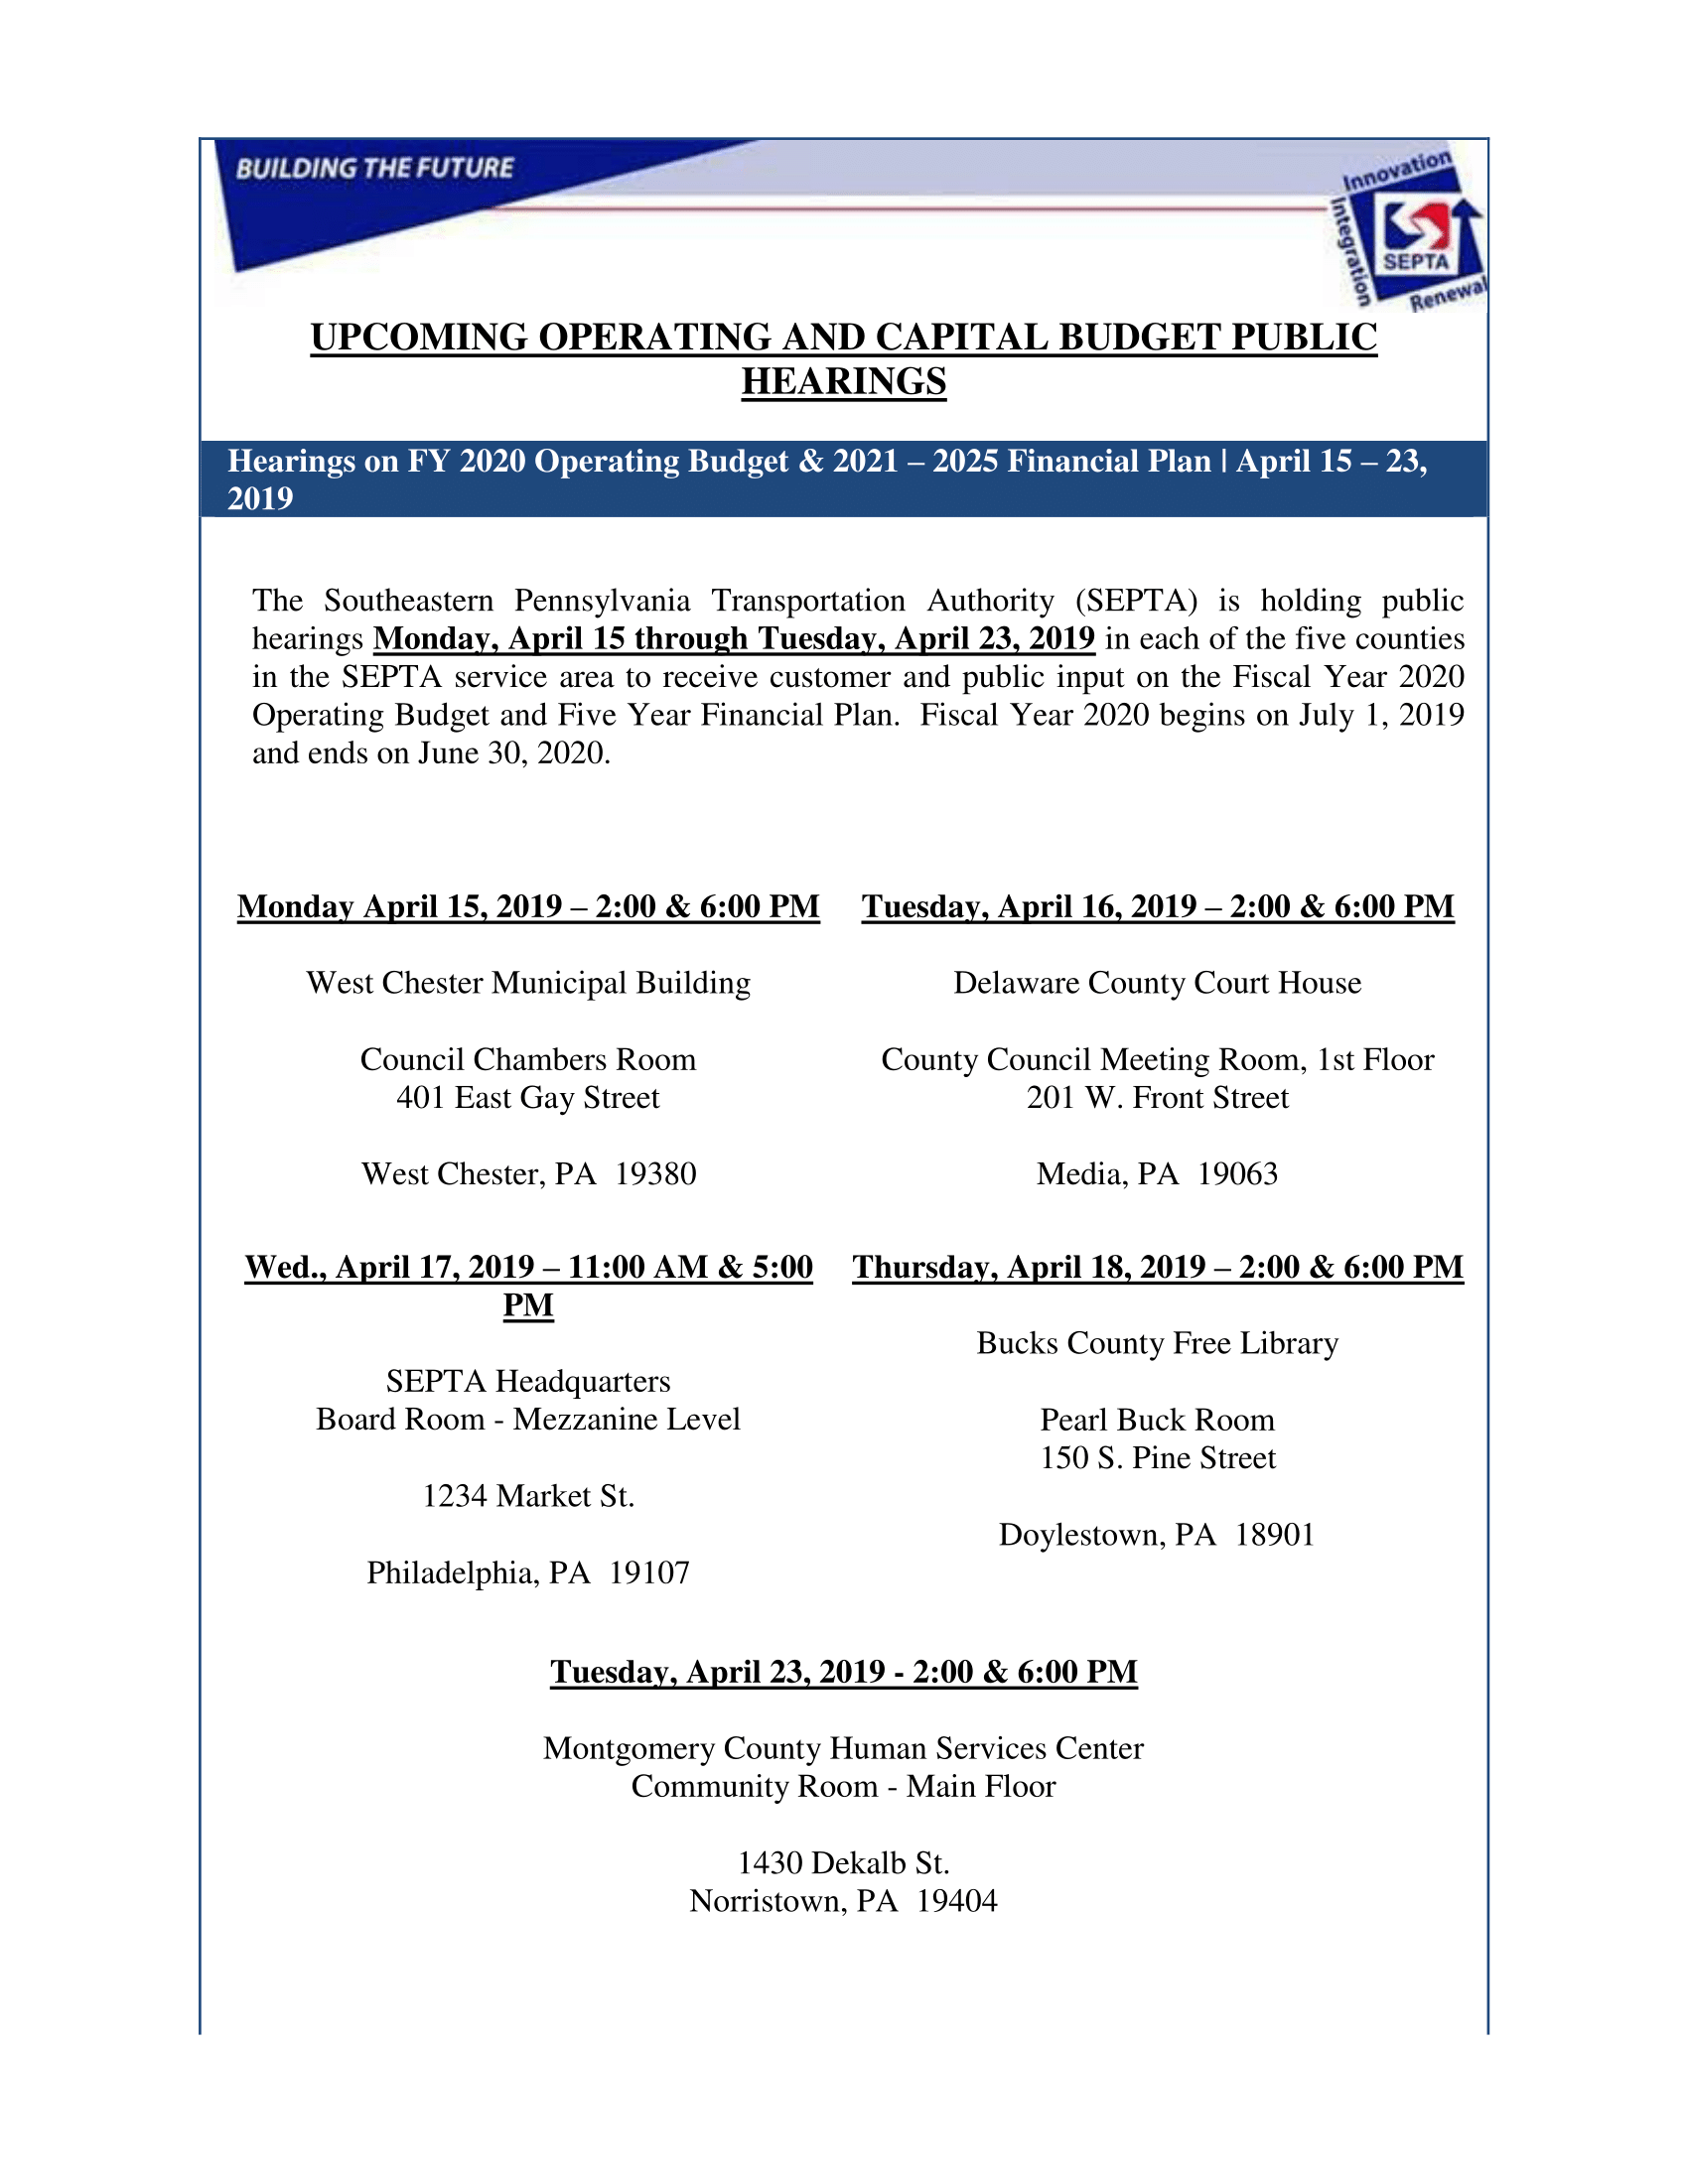 SEPTA Upcoming Operating and Capital Budget Public Hearings-1.png